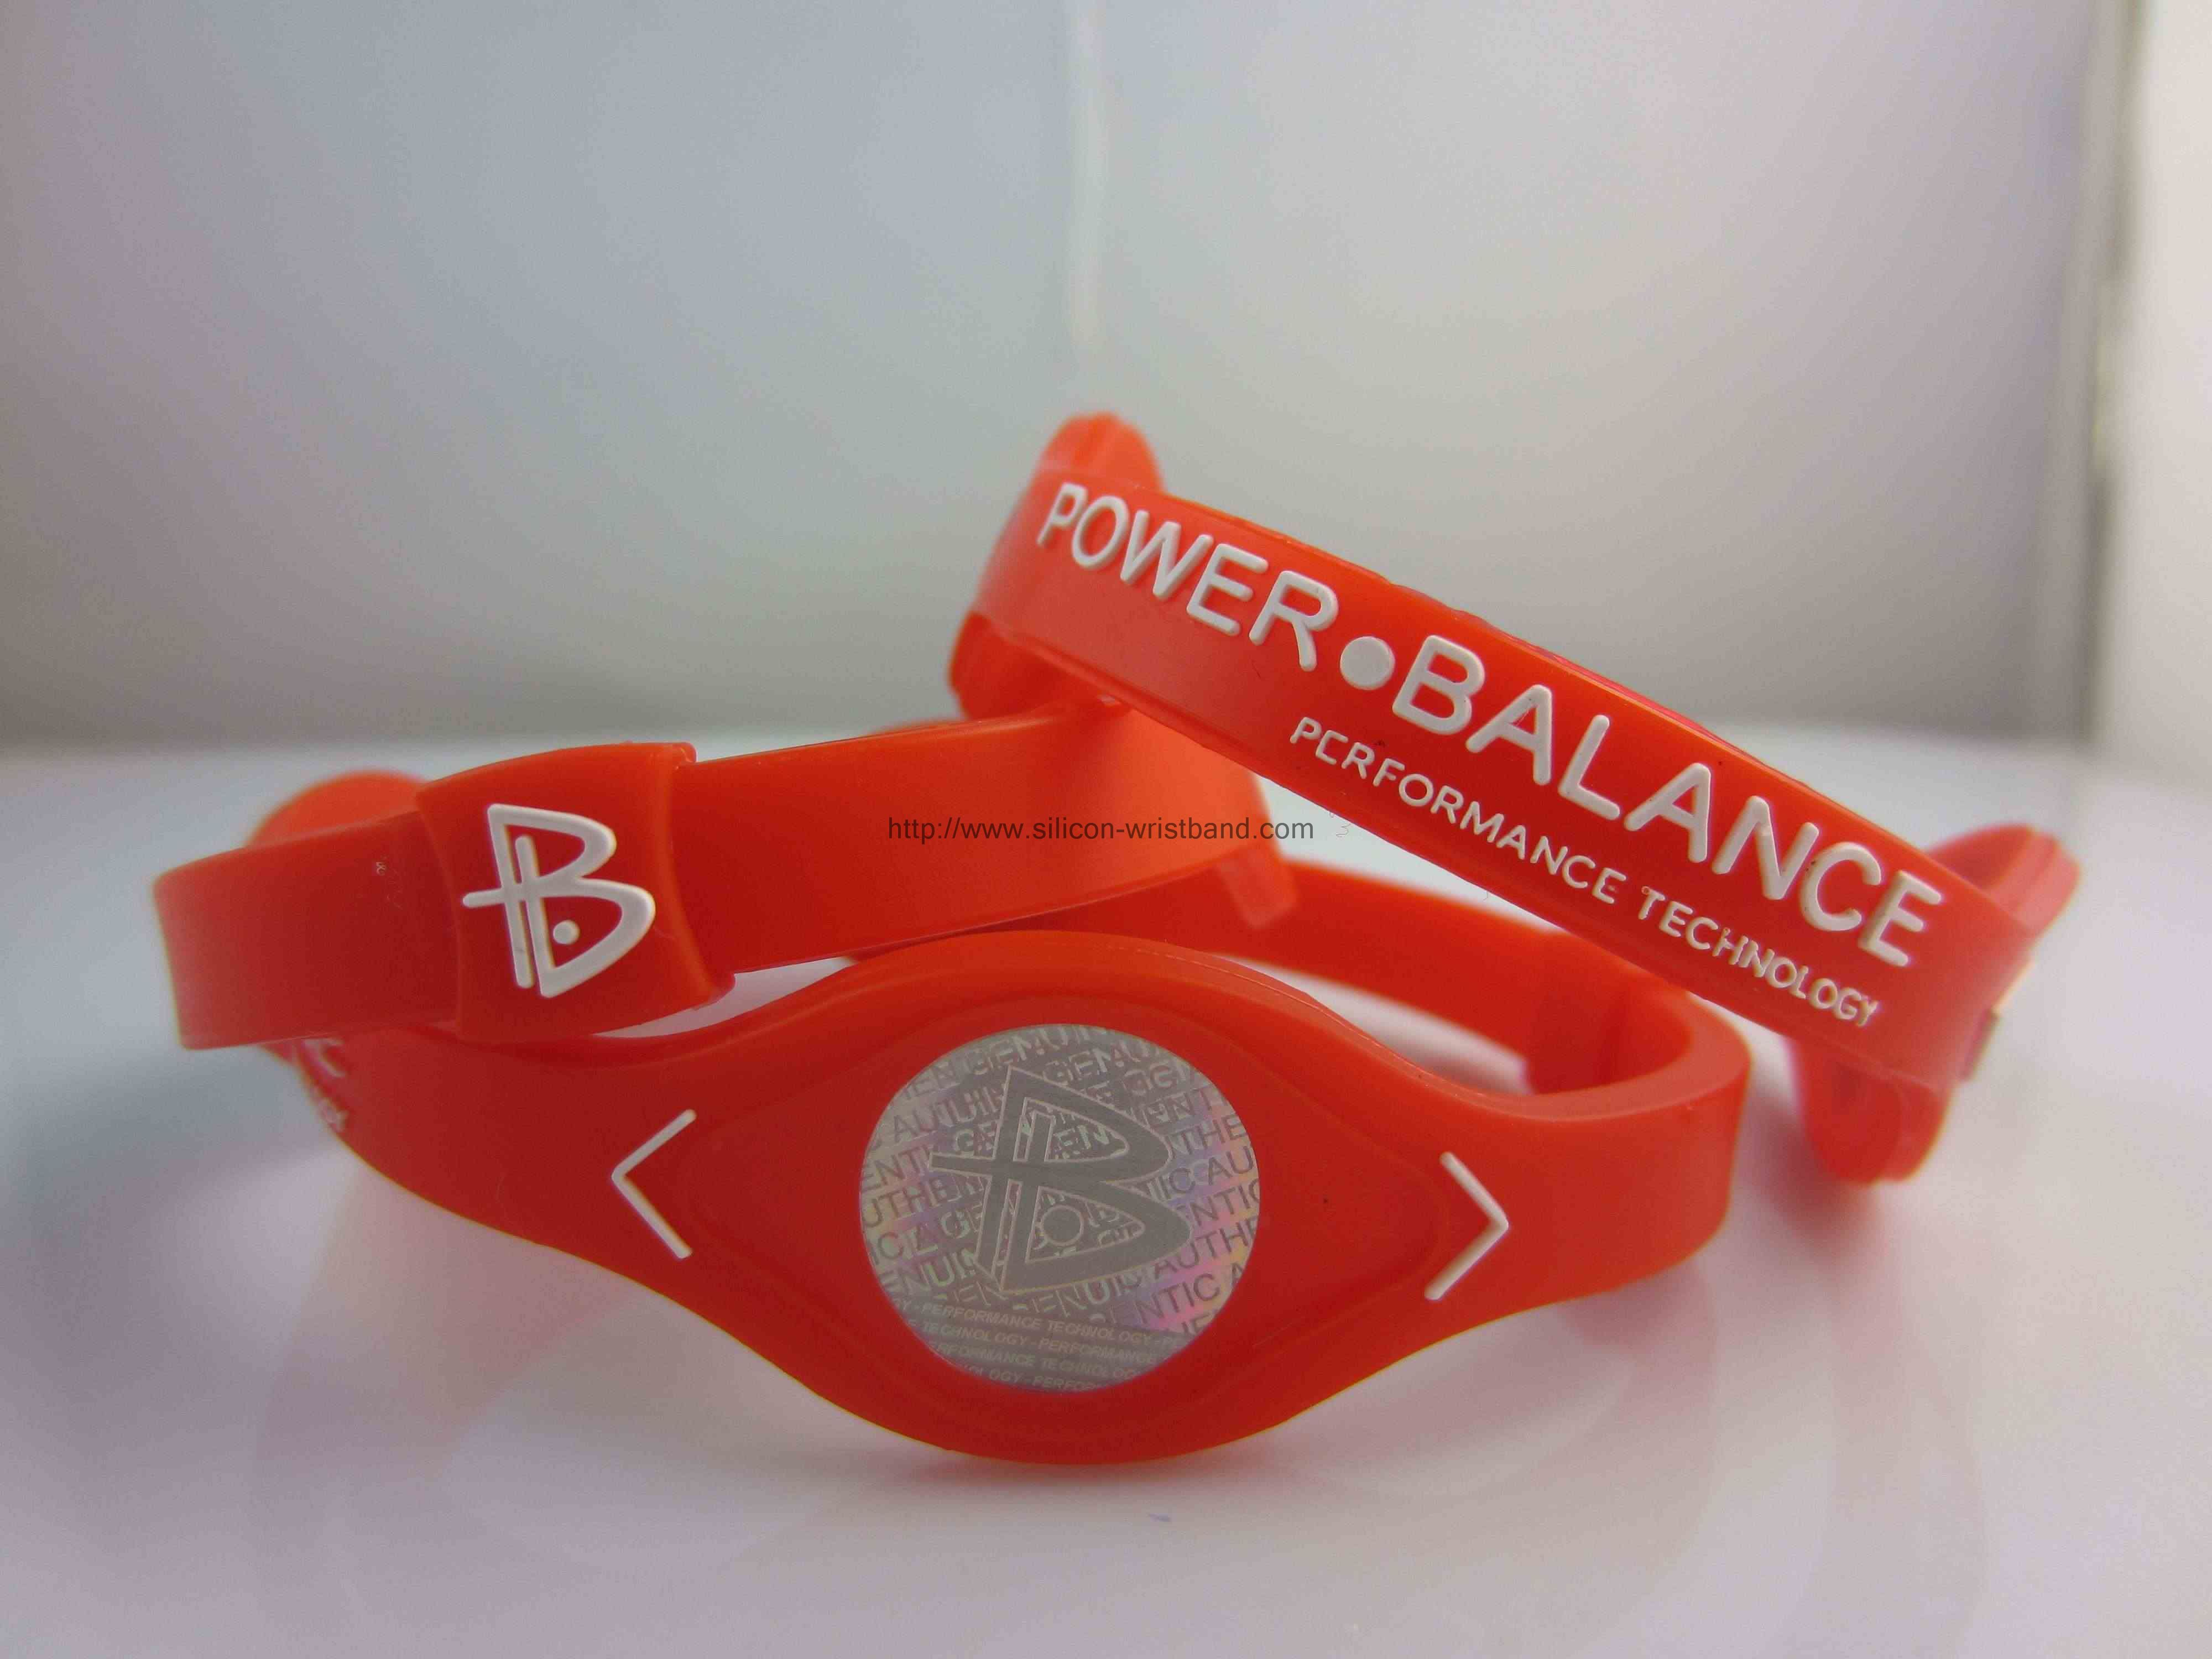 very cheap silicone wristbands